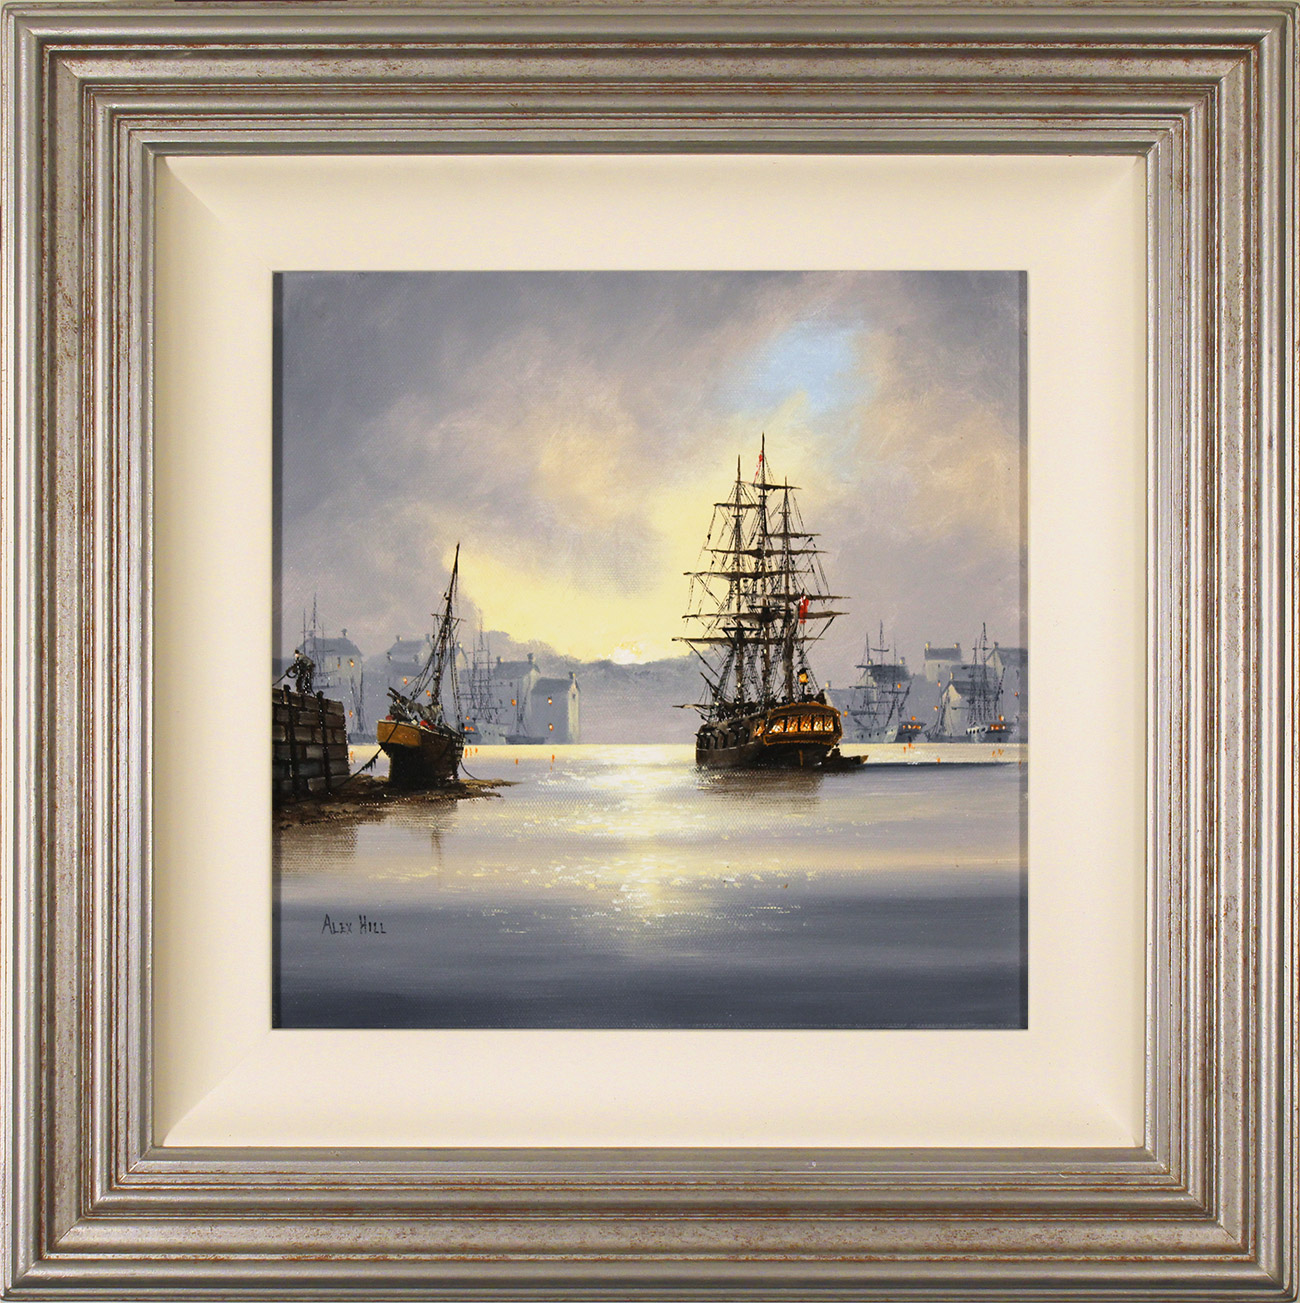 Alex Hill, Original oil painting on canvas, Set Sail at Dawn , click to enlarge